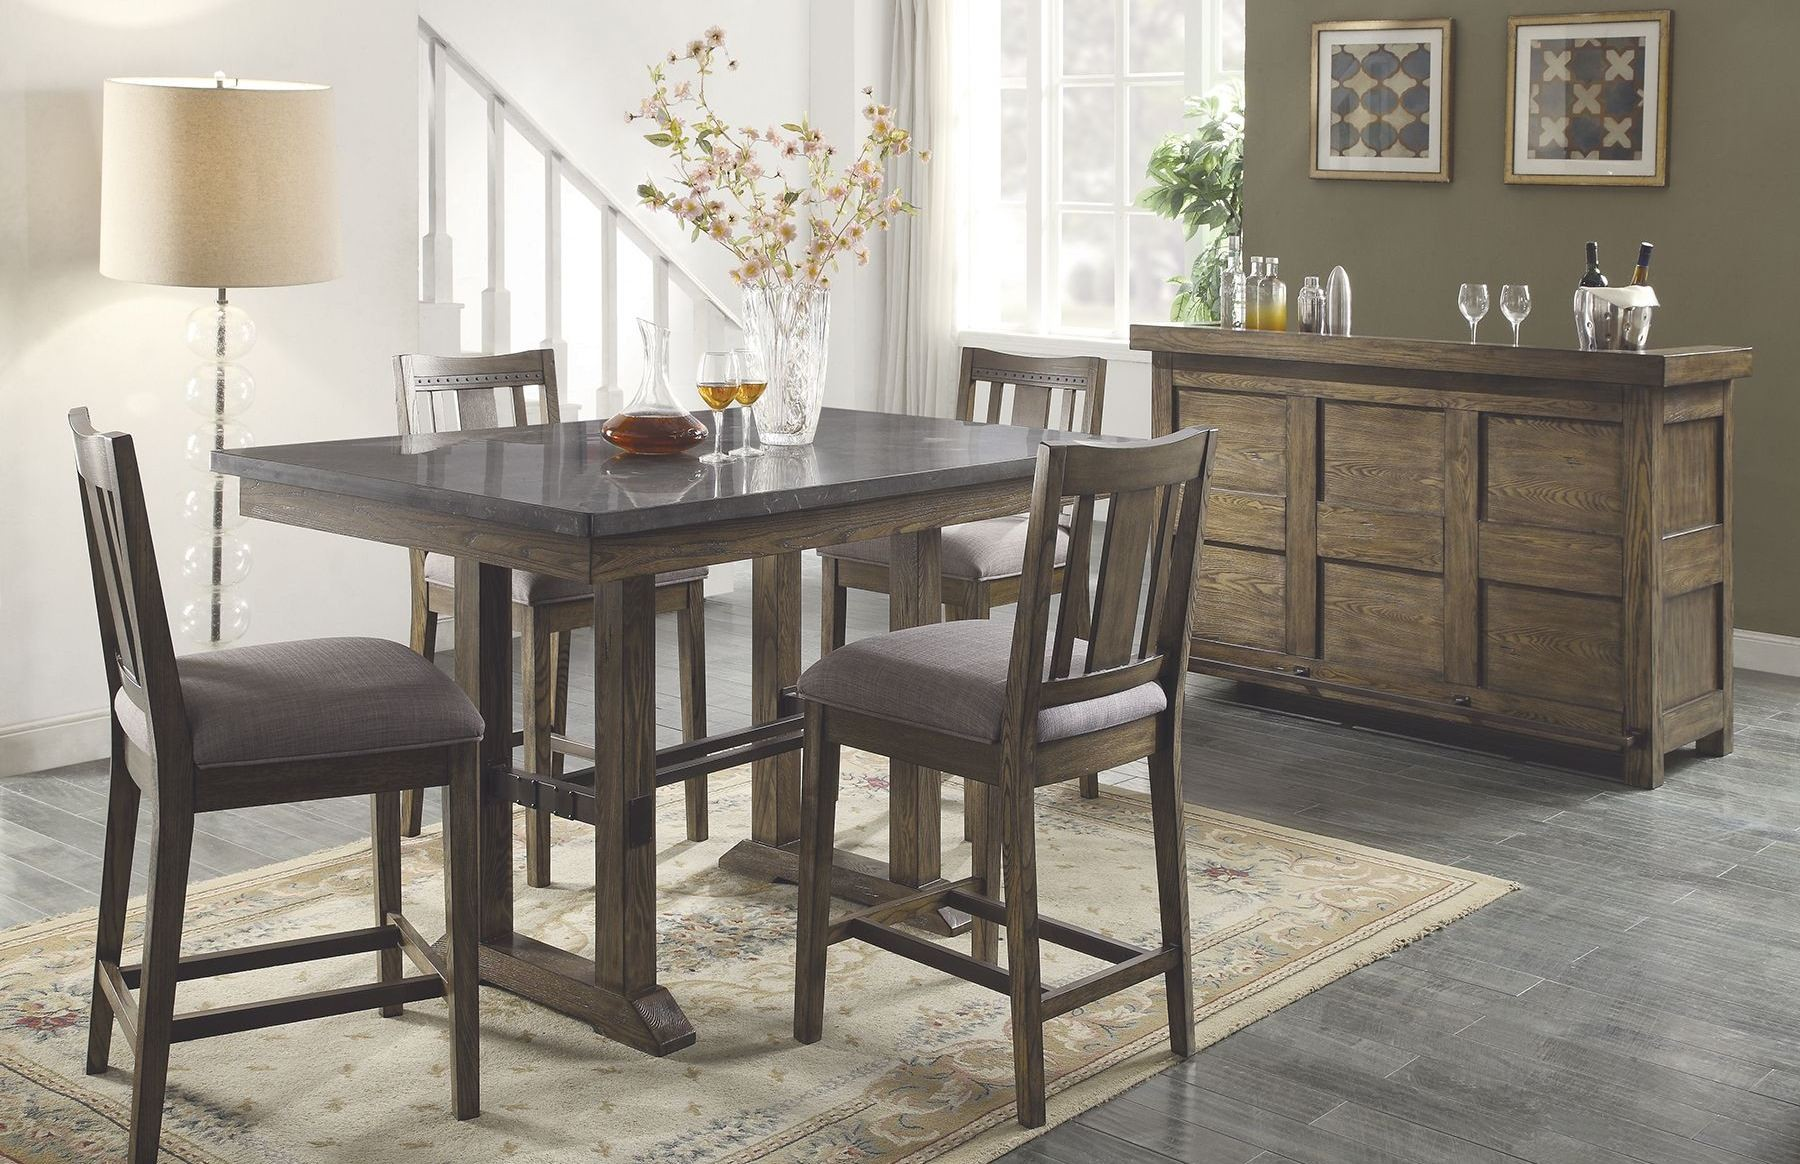 Counter Height Rustic Dining Sets : ... Dining Sets > Willowbrook Rustic Ash Counter Height Dining Room Set